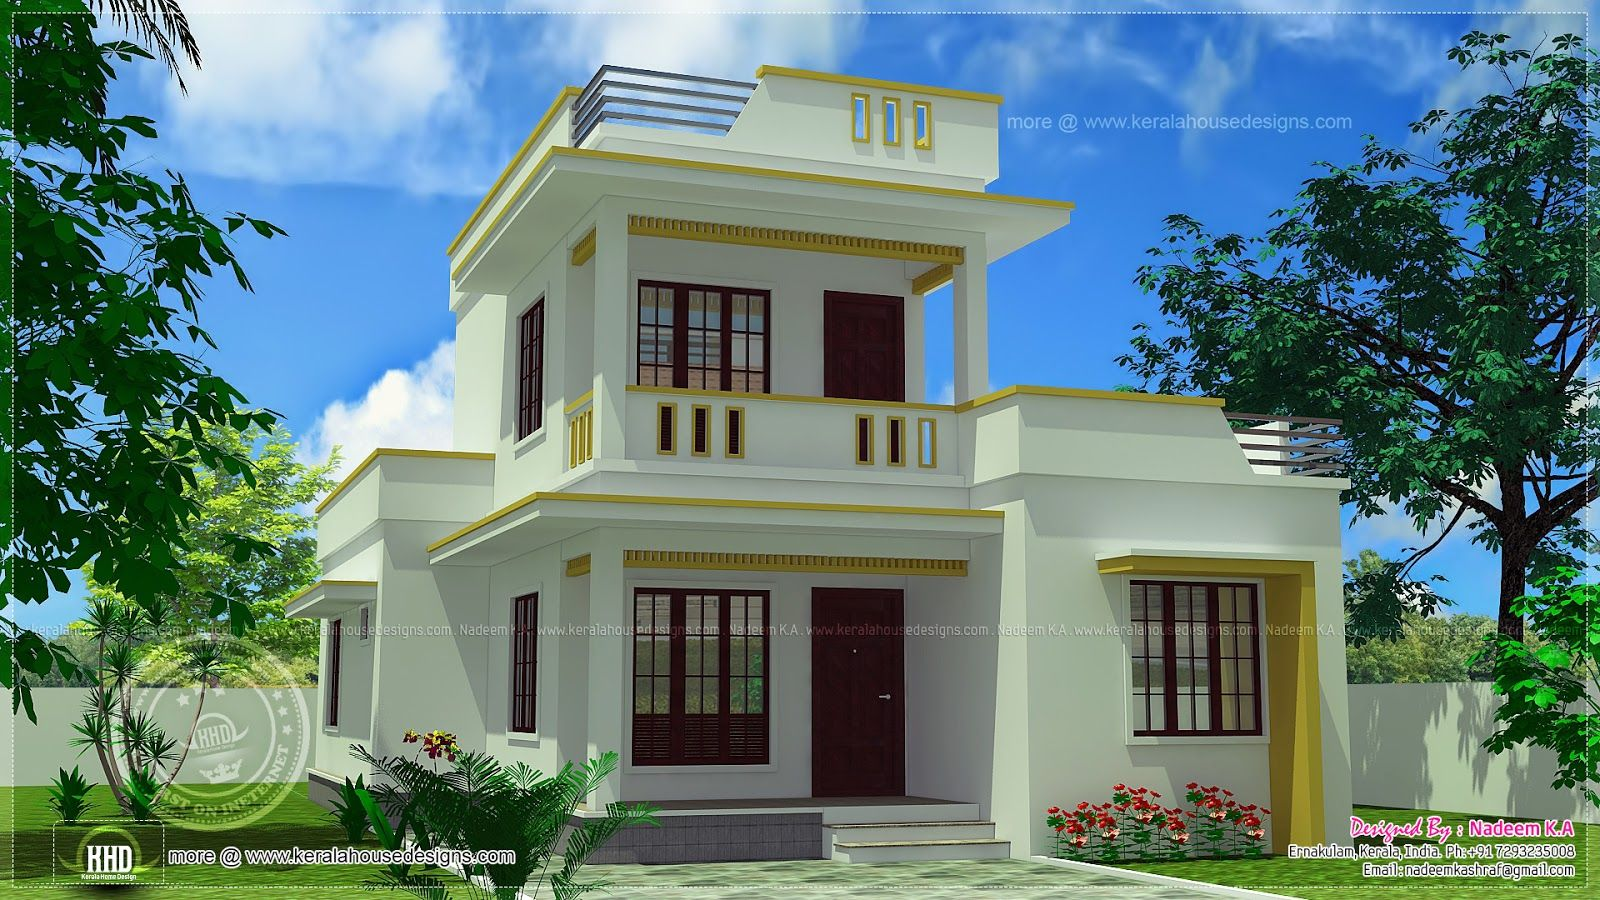 Roof home design feet kerala plans simple modern house for Simple and modern house